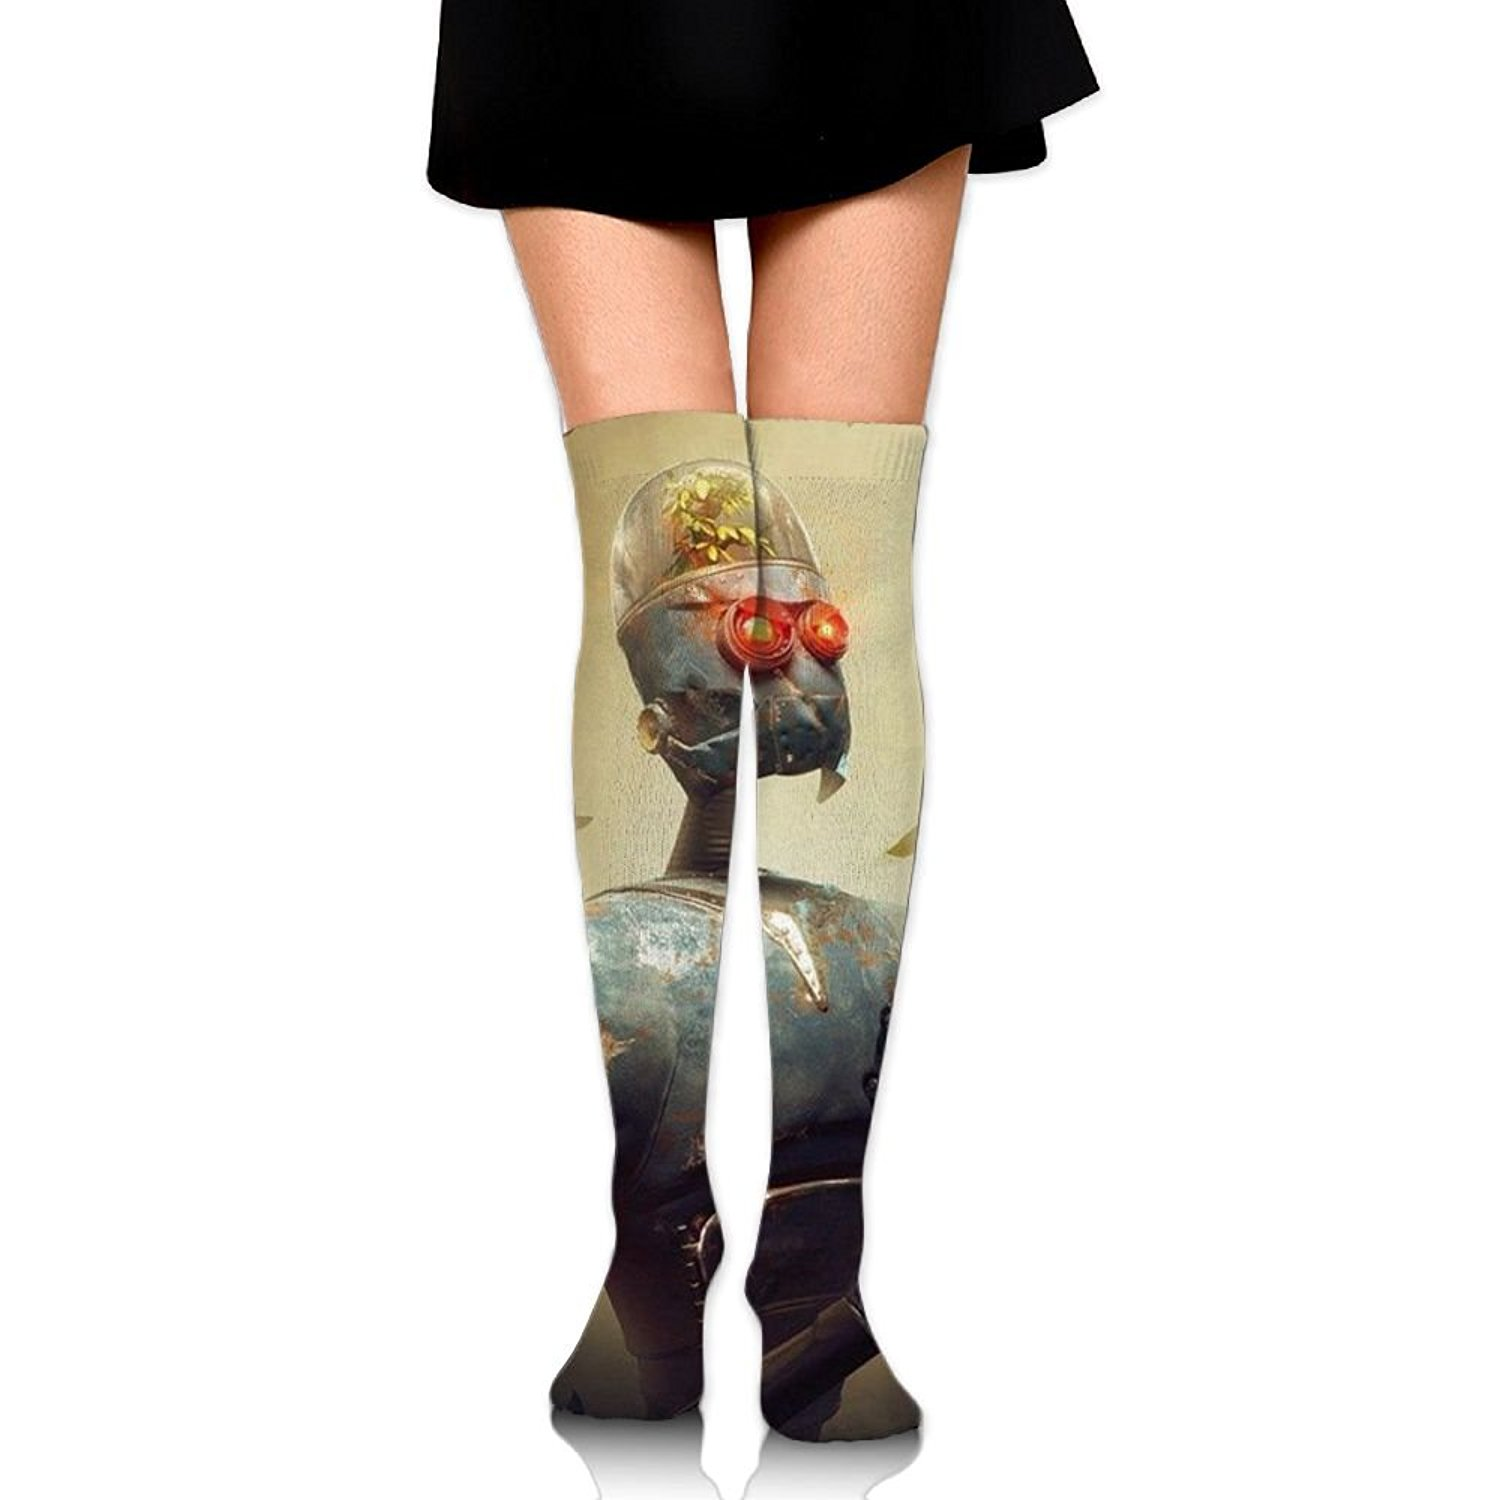 Zaqxsw Robot Devout Women Fashion Thigh High Socks Over The Knee Socks For Ladies